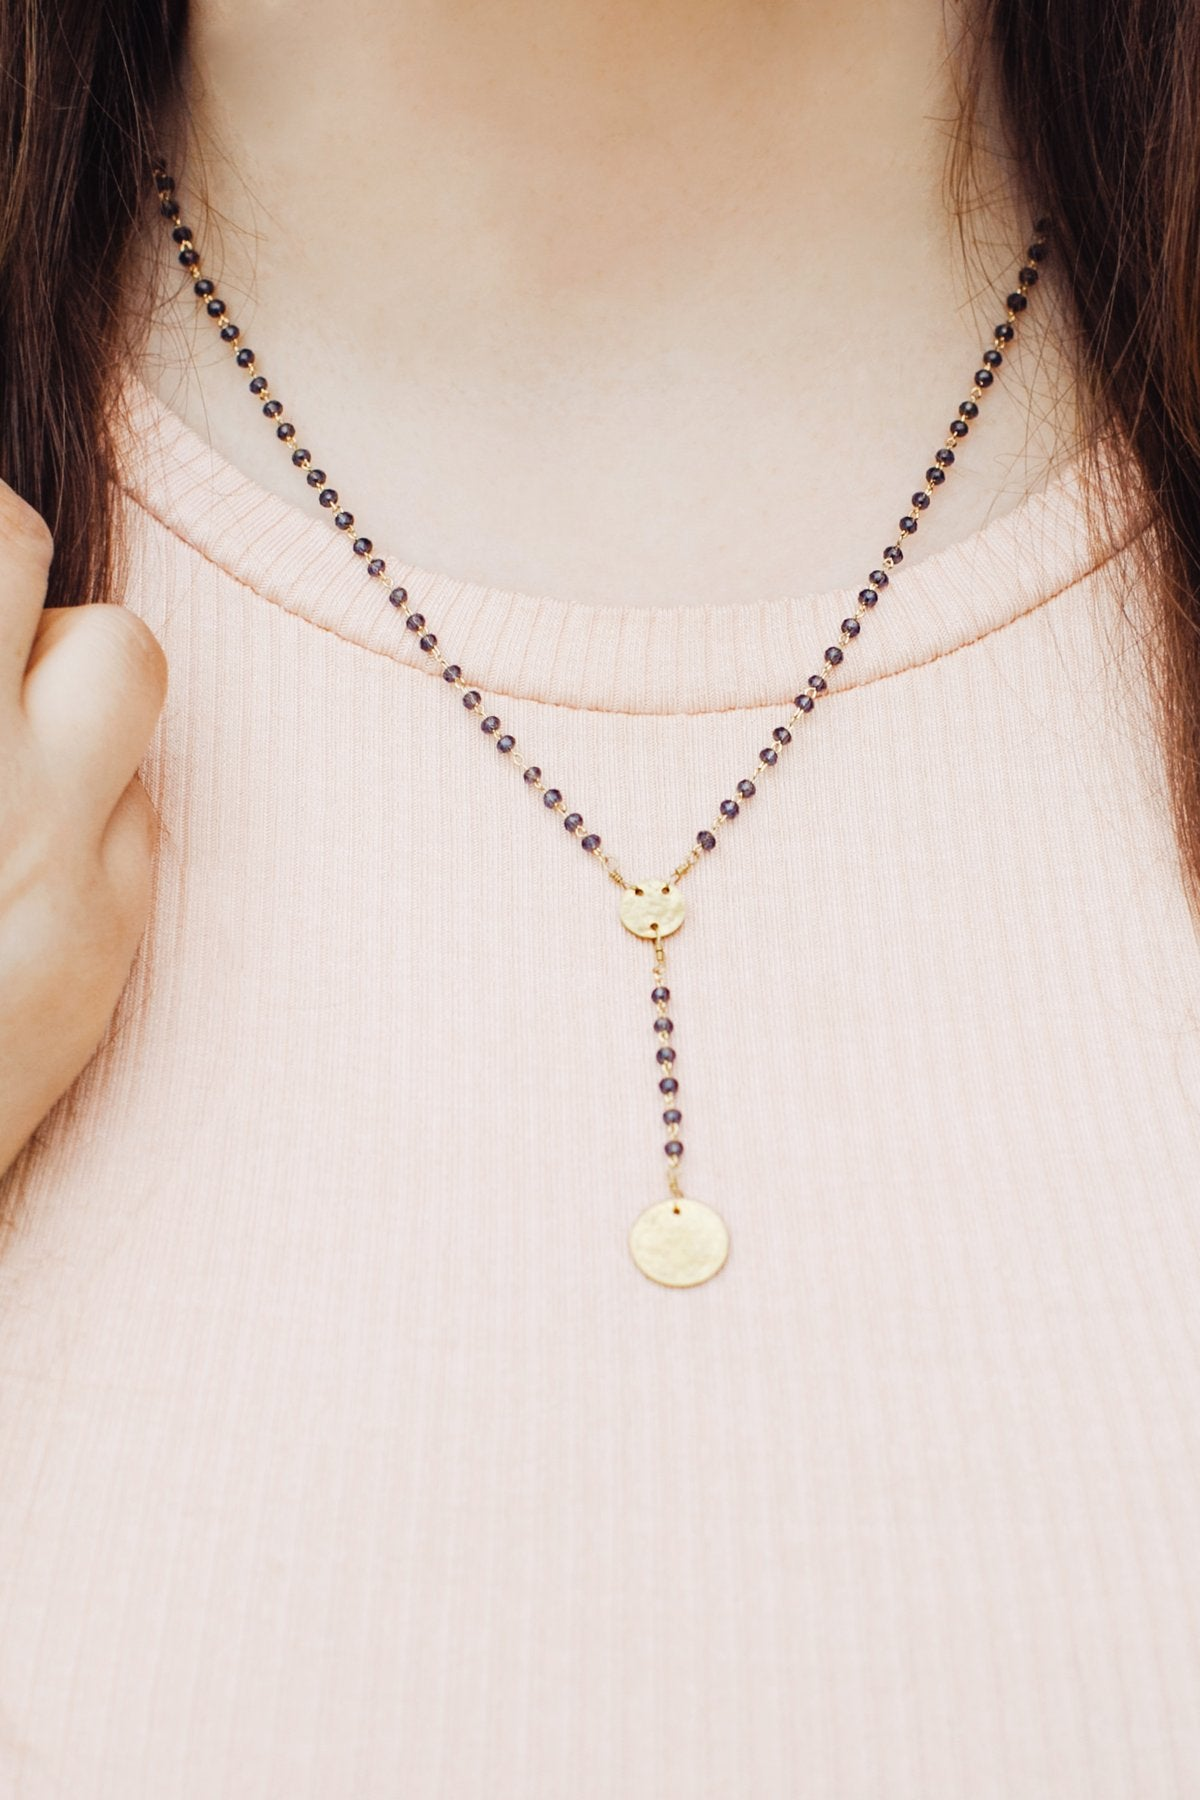 Cherished Necklace